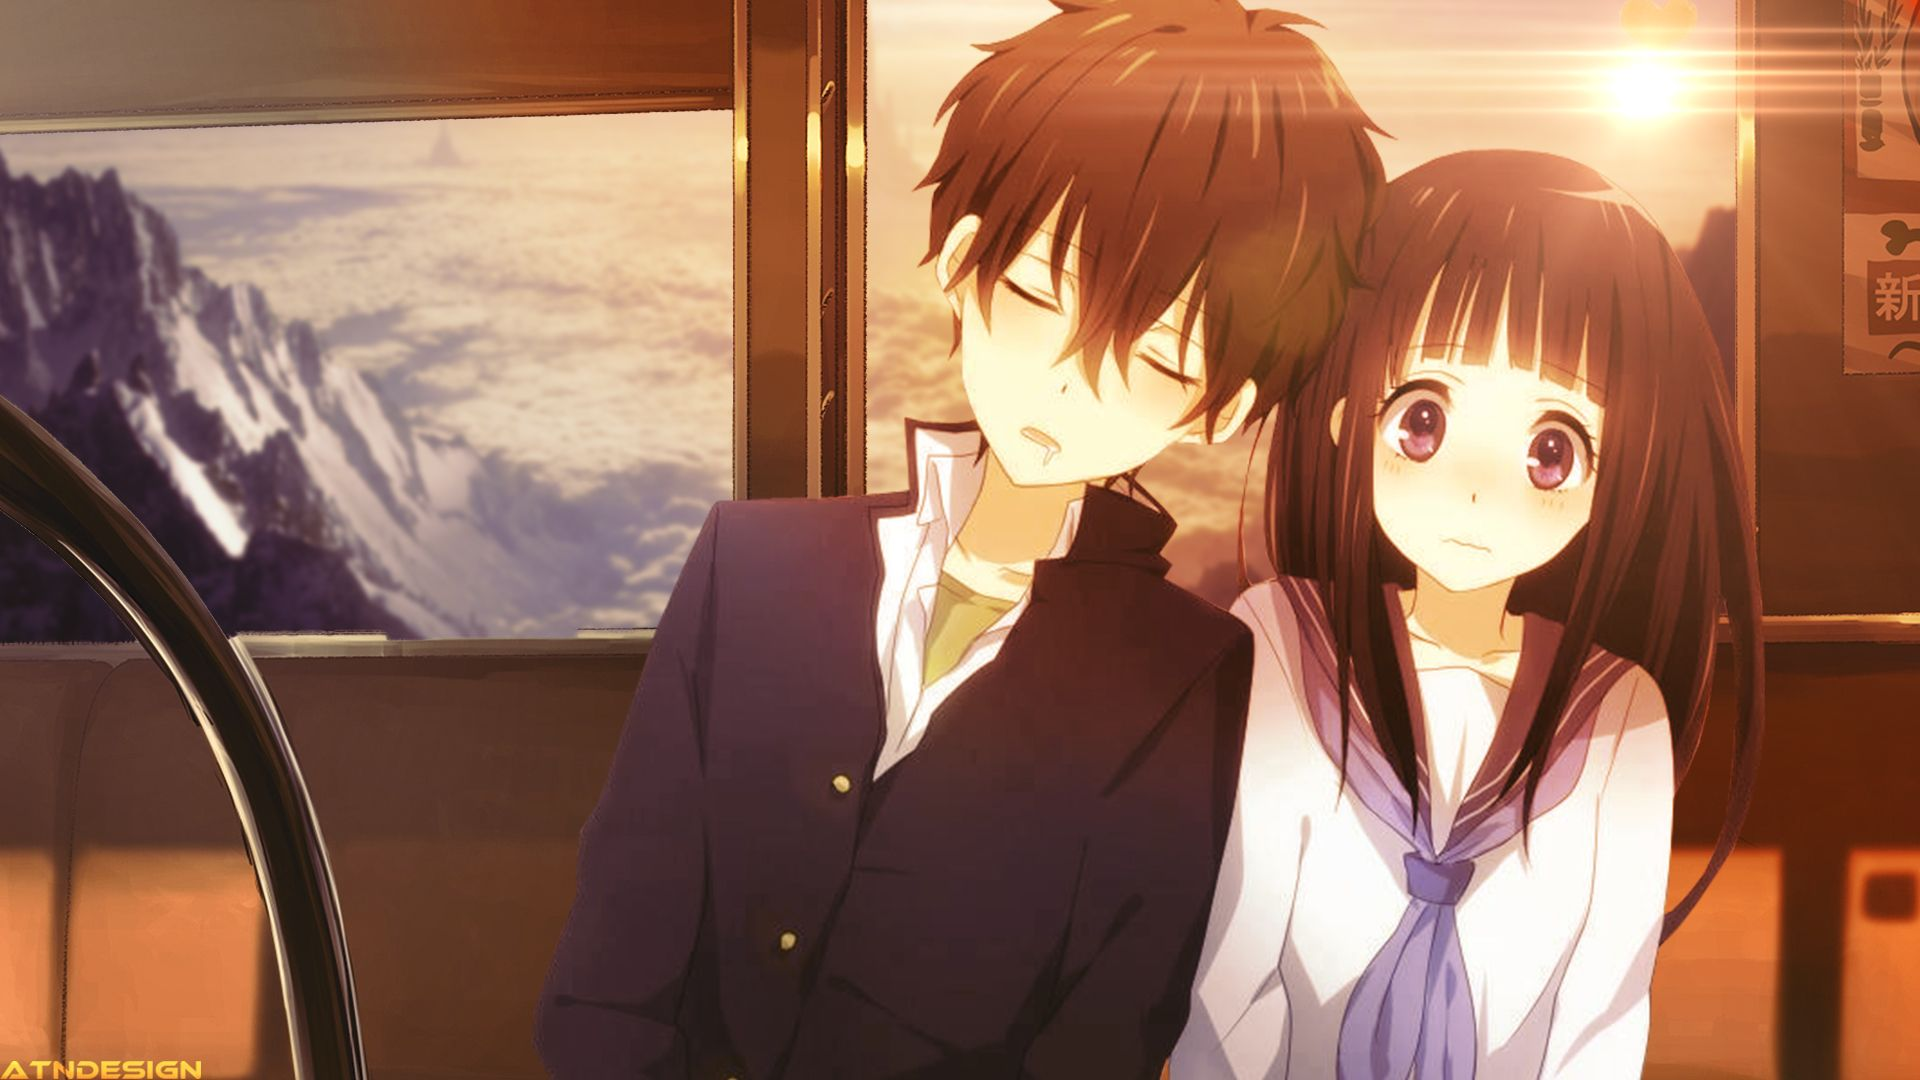 Cute anime couples wallpaper 1920x1080 75207